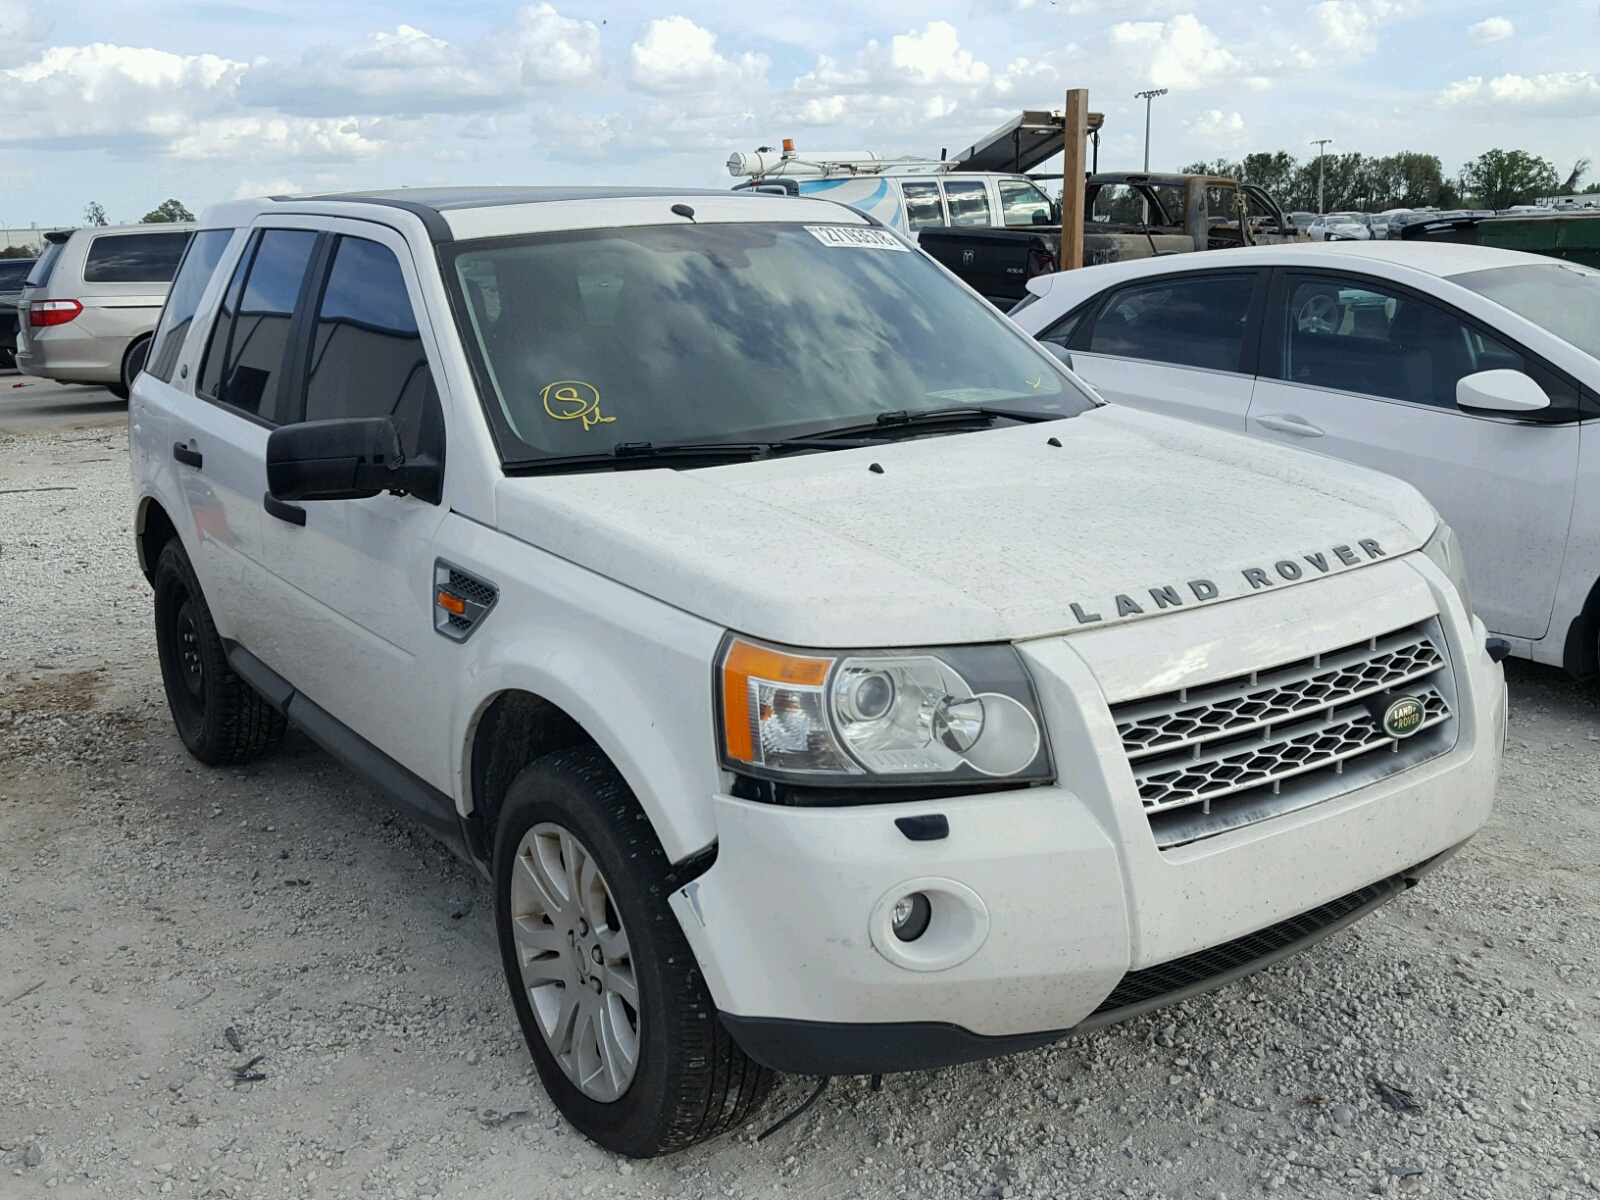 sale columbia accident roof sun british no rover used land vancouver landrover for panoramic cars